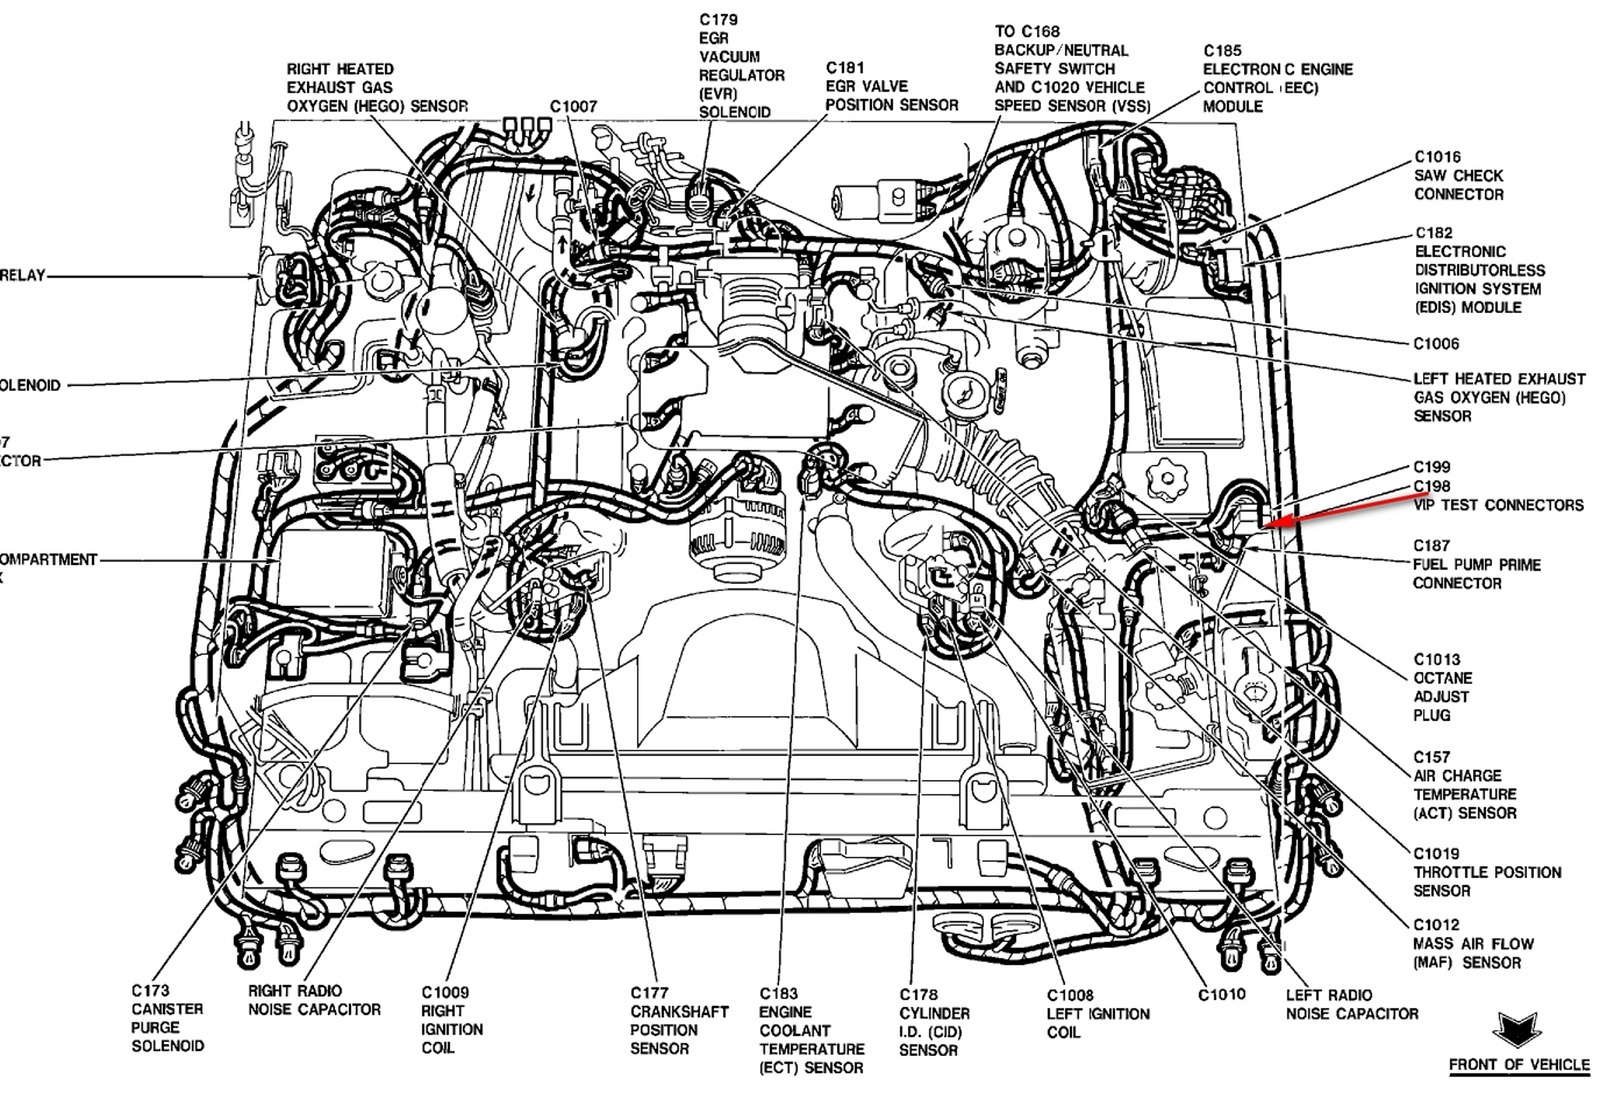 Discussion T16270 ds545905 furthermore Wiring Diagram 2006 Hyundai Azera also 3ei8o Air Bag Restraint Control Module Location additionally 2010 Jeep Patriot Dashboard Symbols in addition Ford Mondeo Iii Fuse Box. on lincoln mkx battery